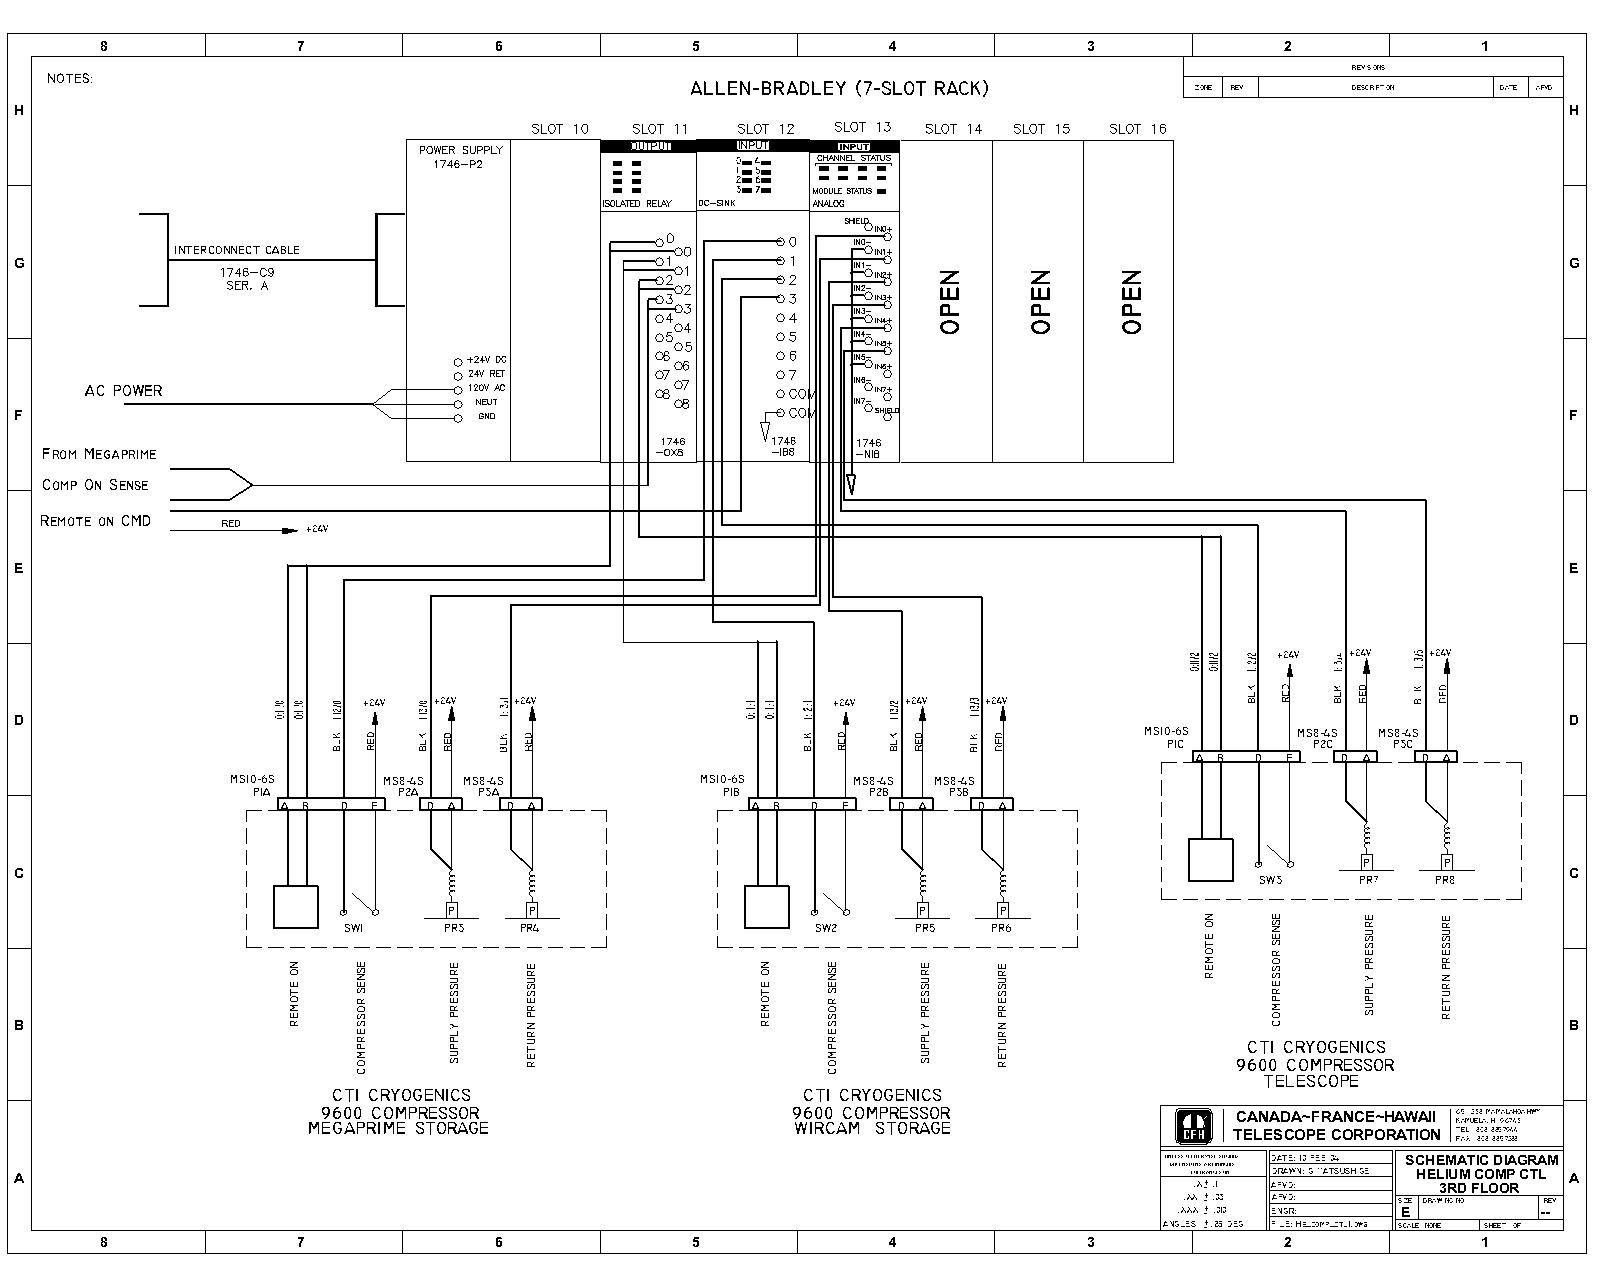 Omron Wiring Diagram Printable Worksheets And Activities For Teachers Parents Tutors And Homeschool Families